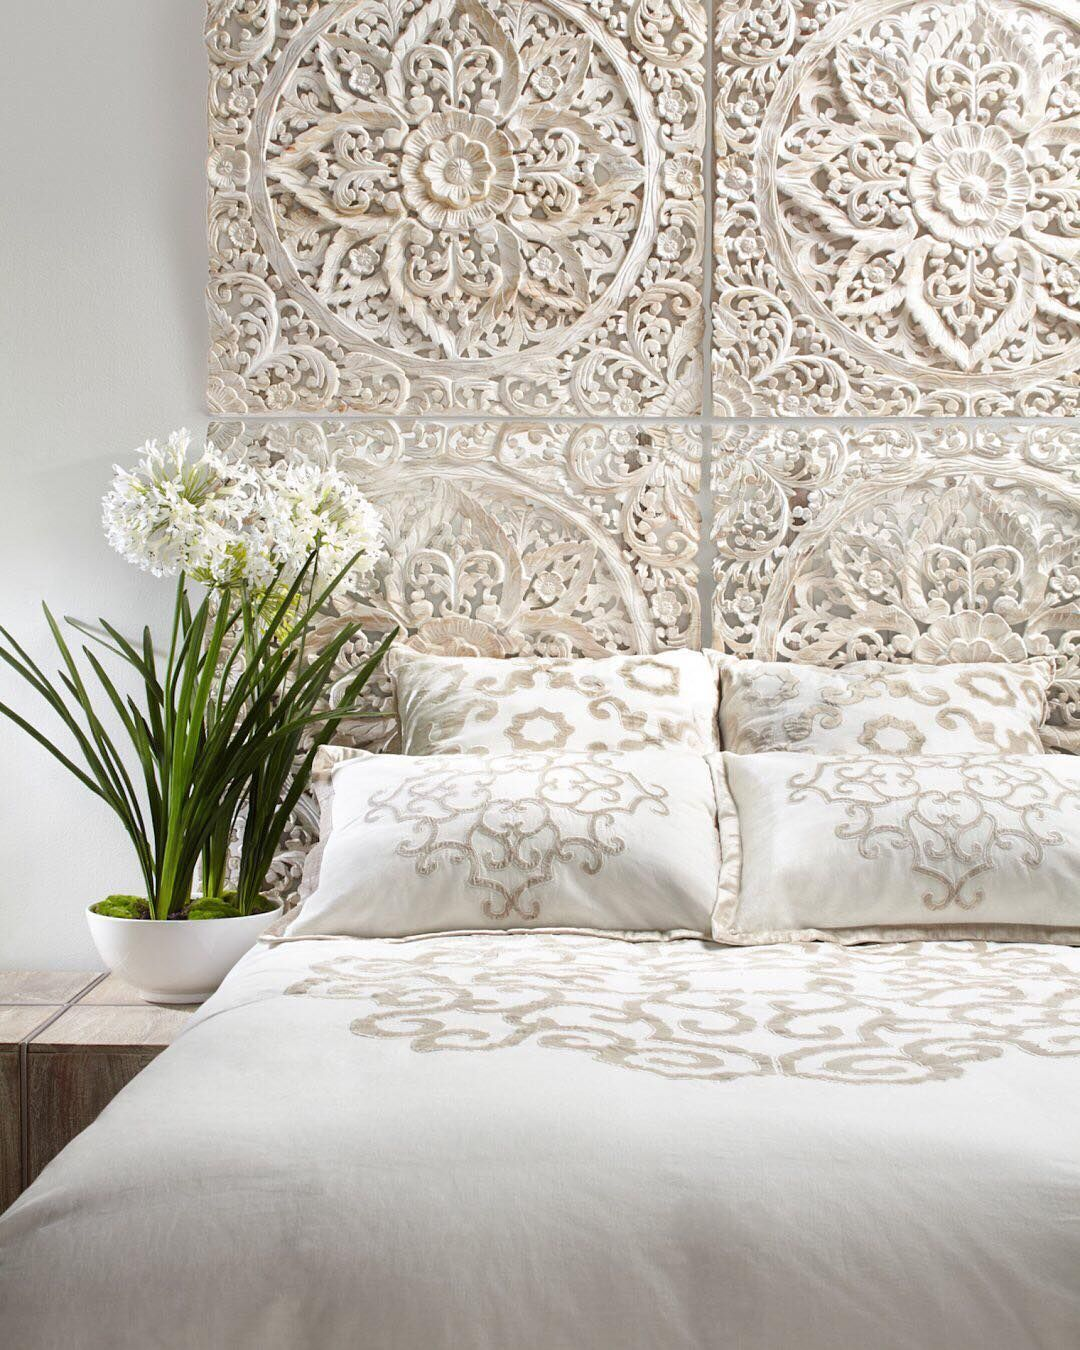 Dormitorios Multiples Bedroom Style Tip Use Multiples Of Our Whitewashed Meticulously